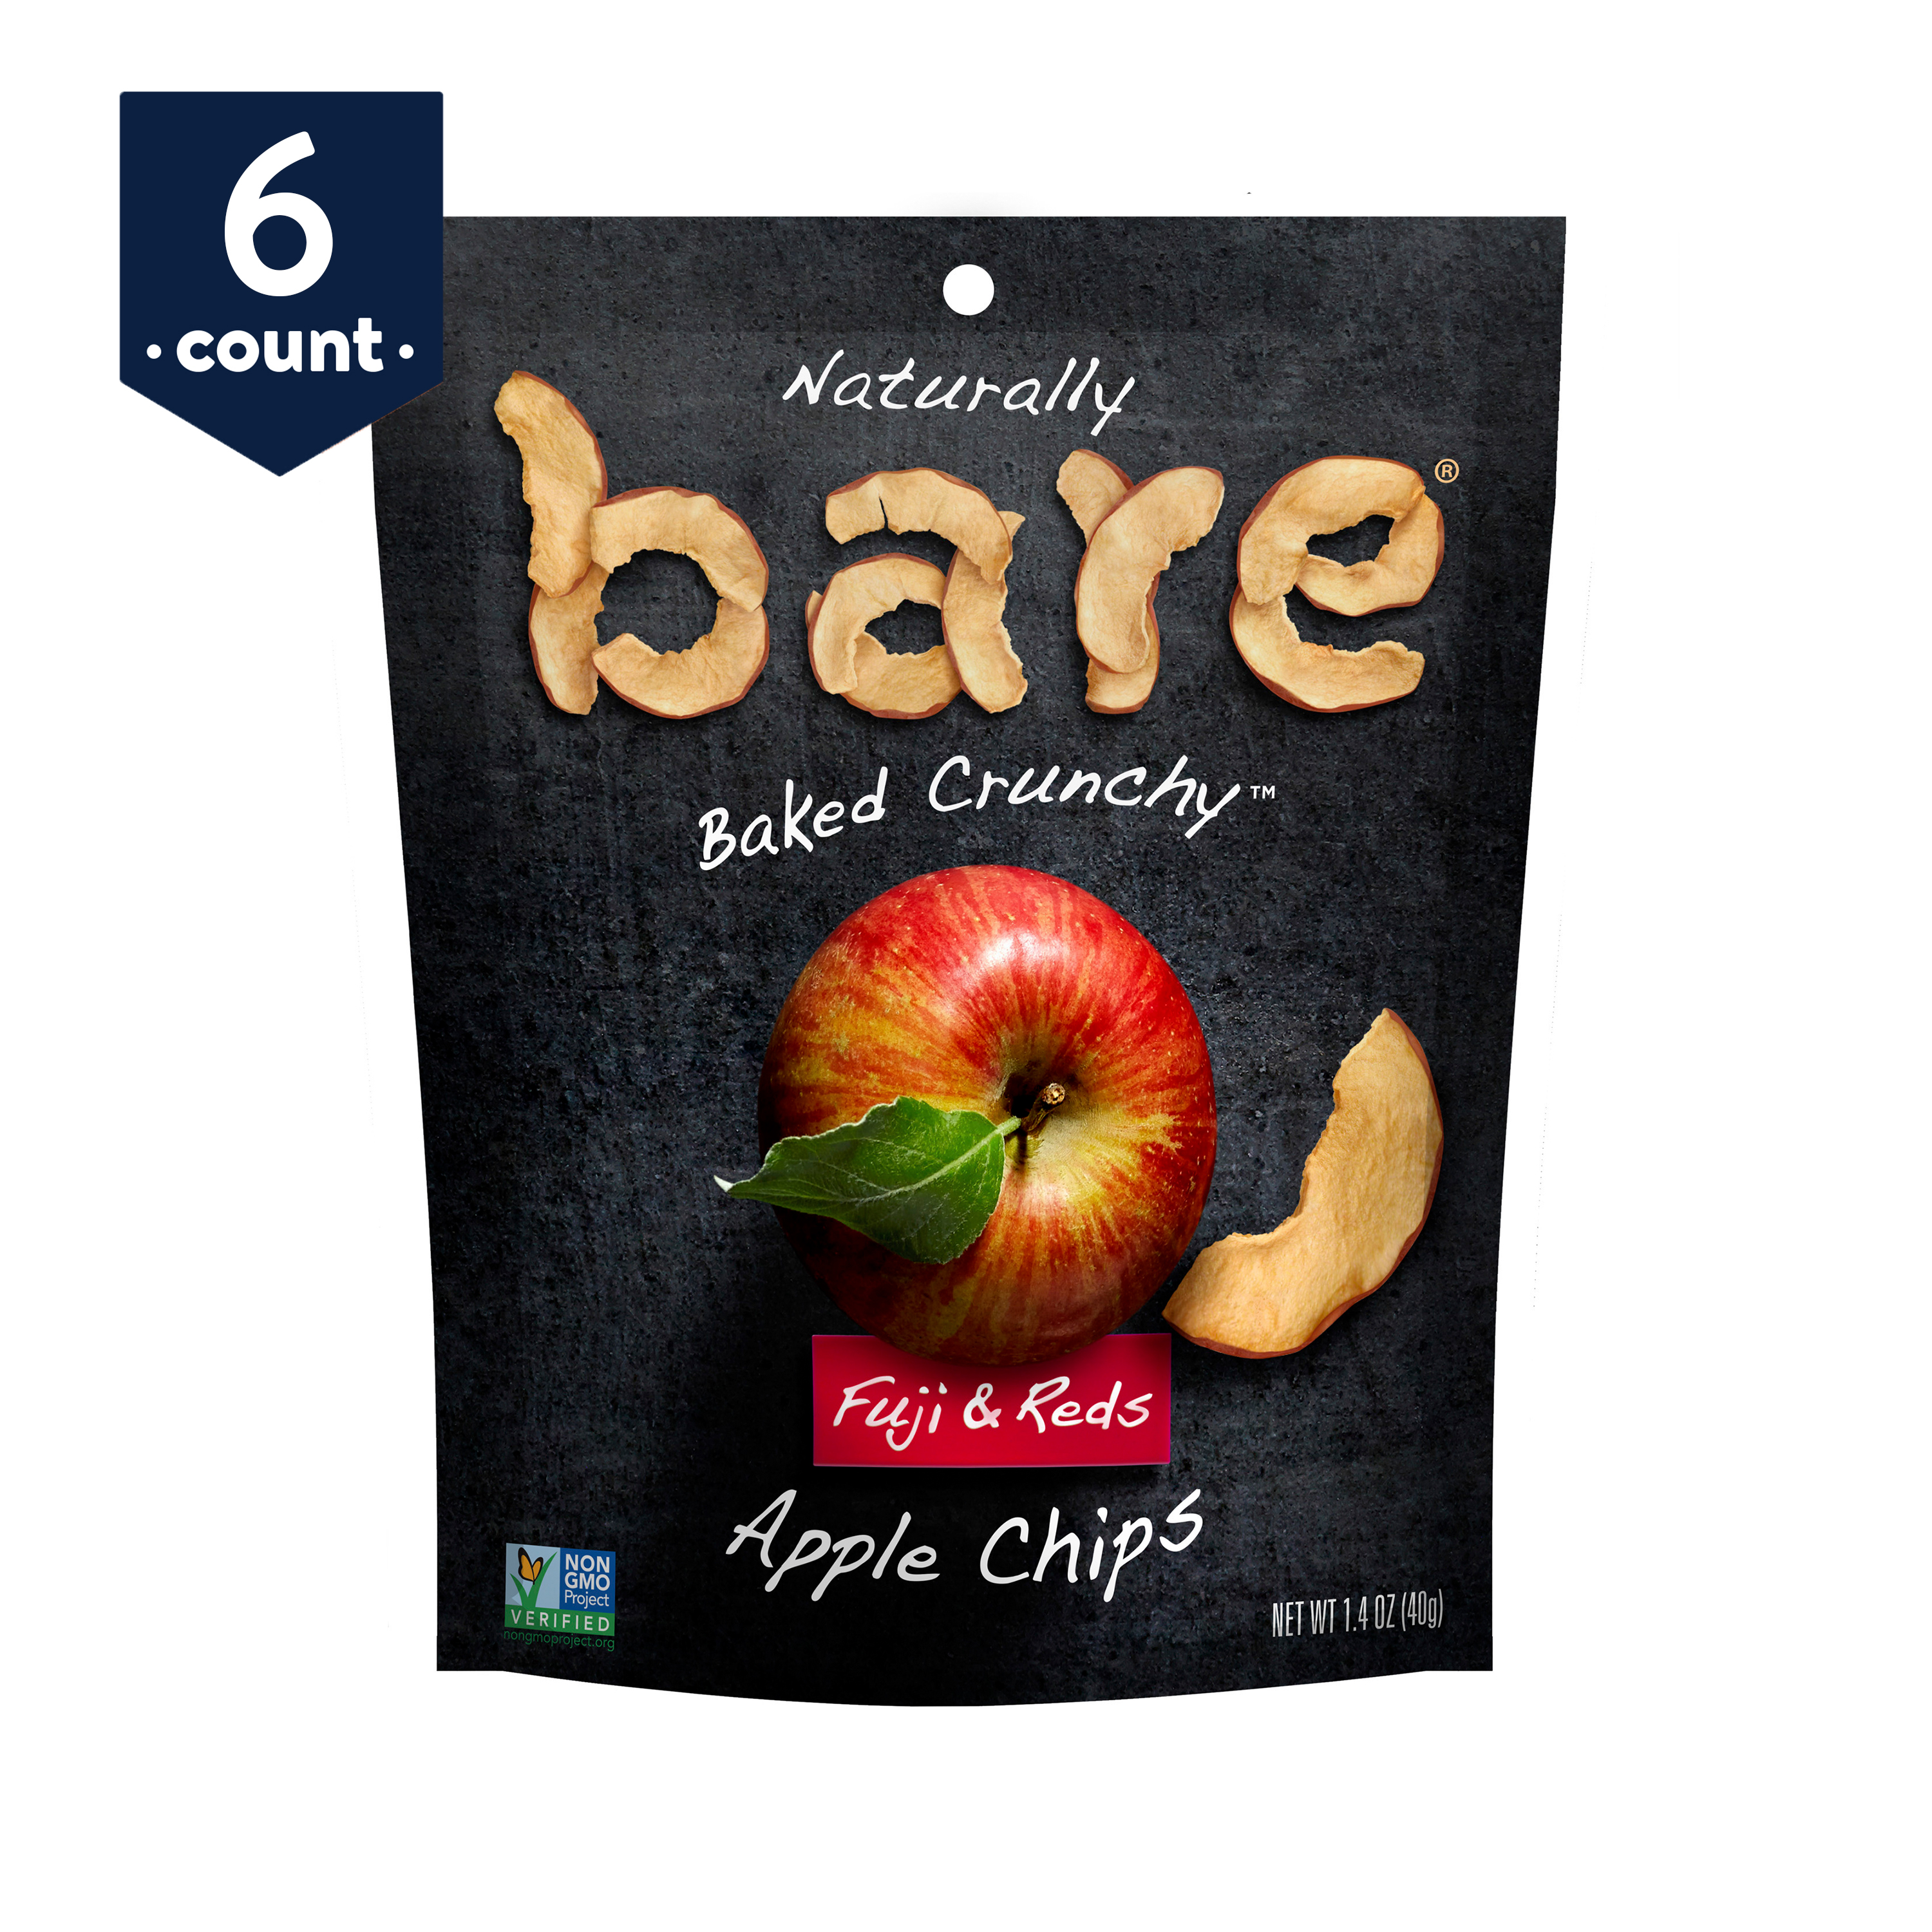 bare Baked Crunchy Apple Chips, Fuji & Reds, 1.4 oz Bags, 6 Count